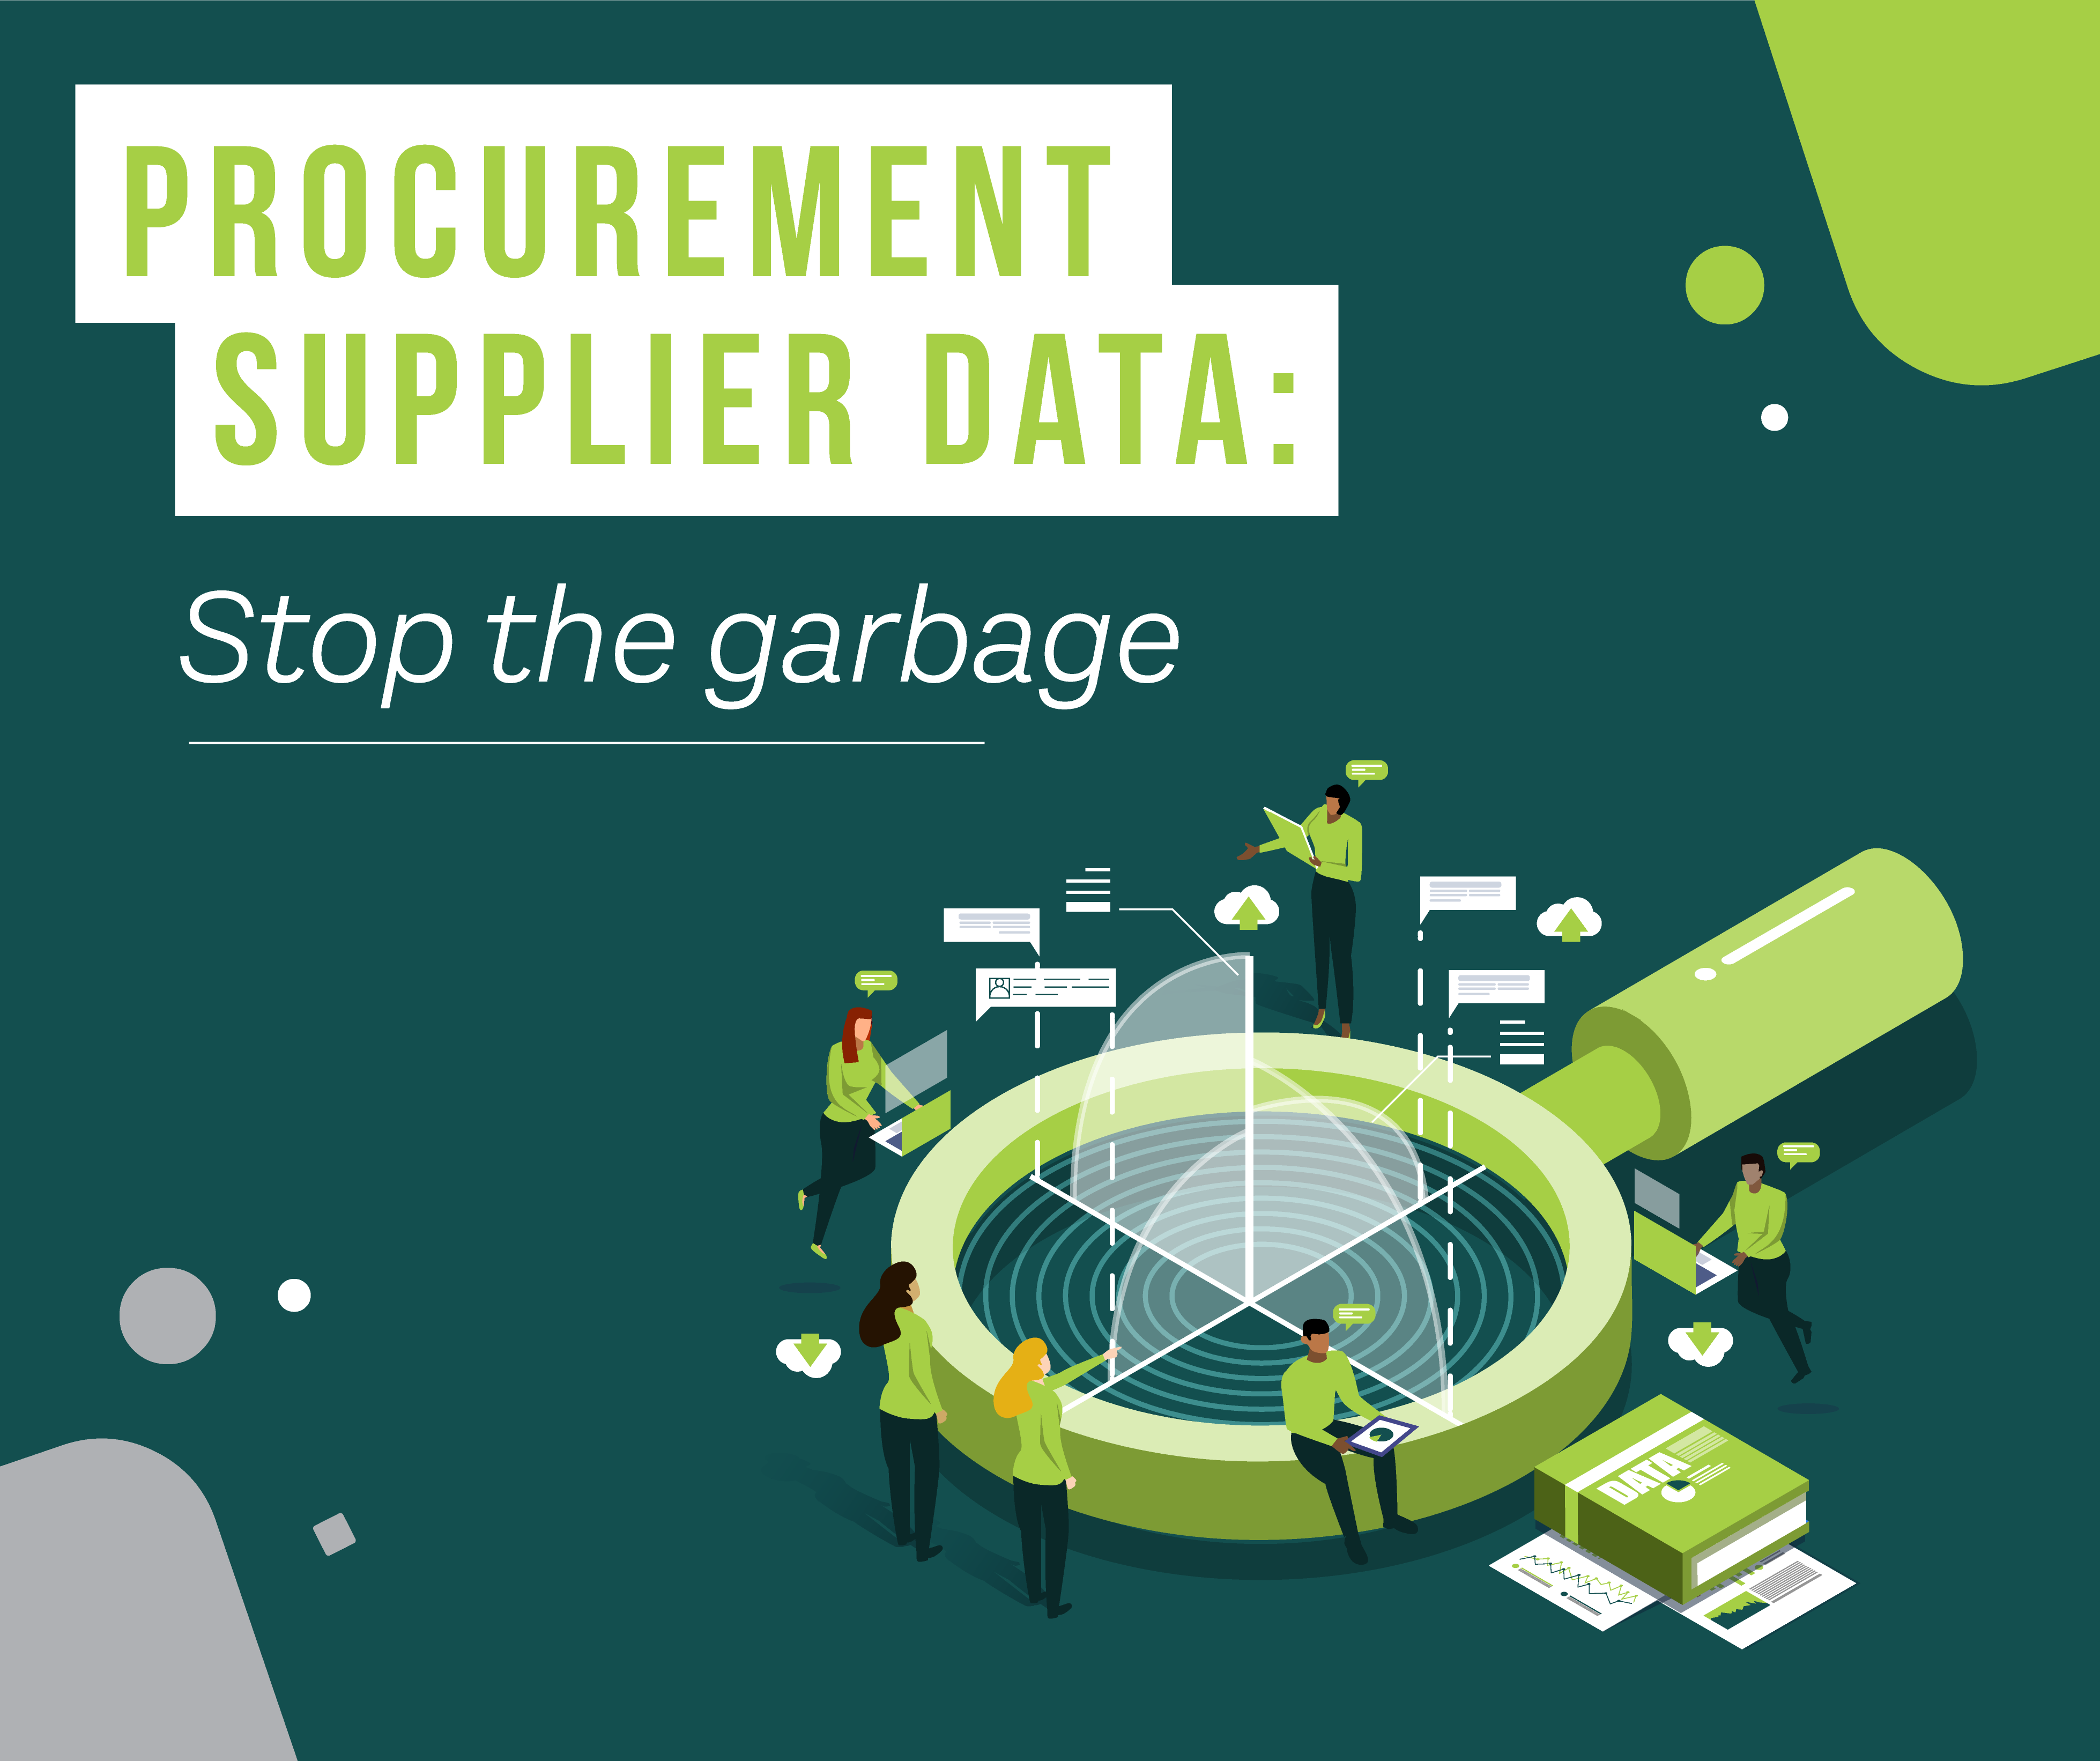 Procurement Supplier Data Stop the Garbage_v3 (1)